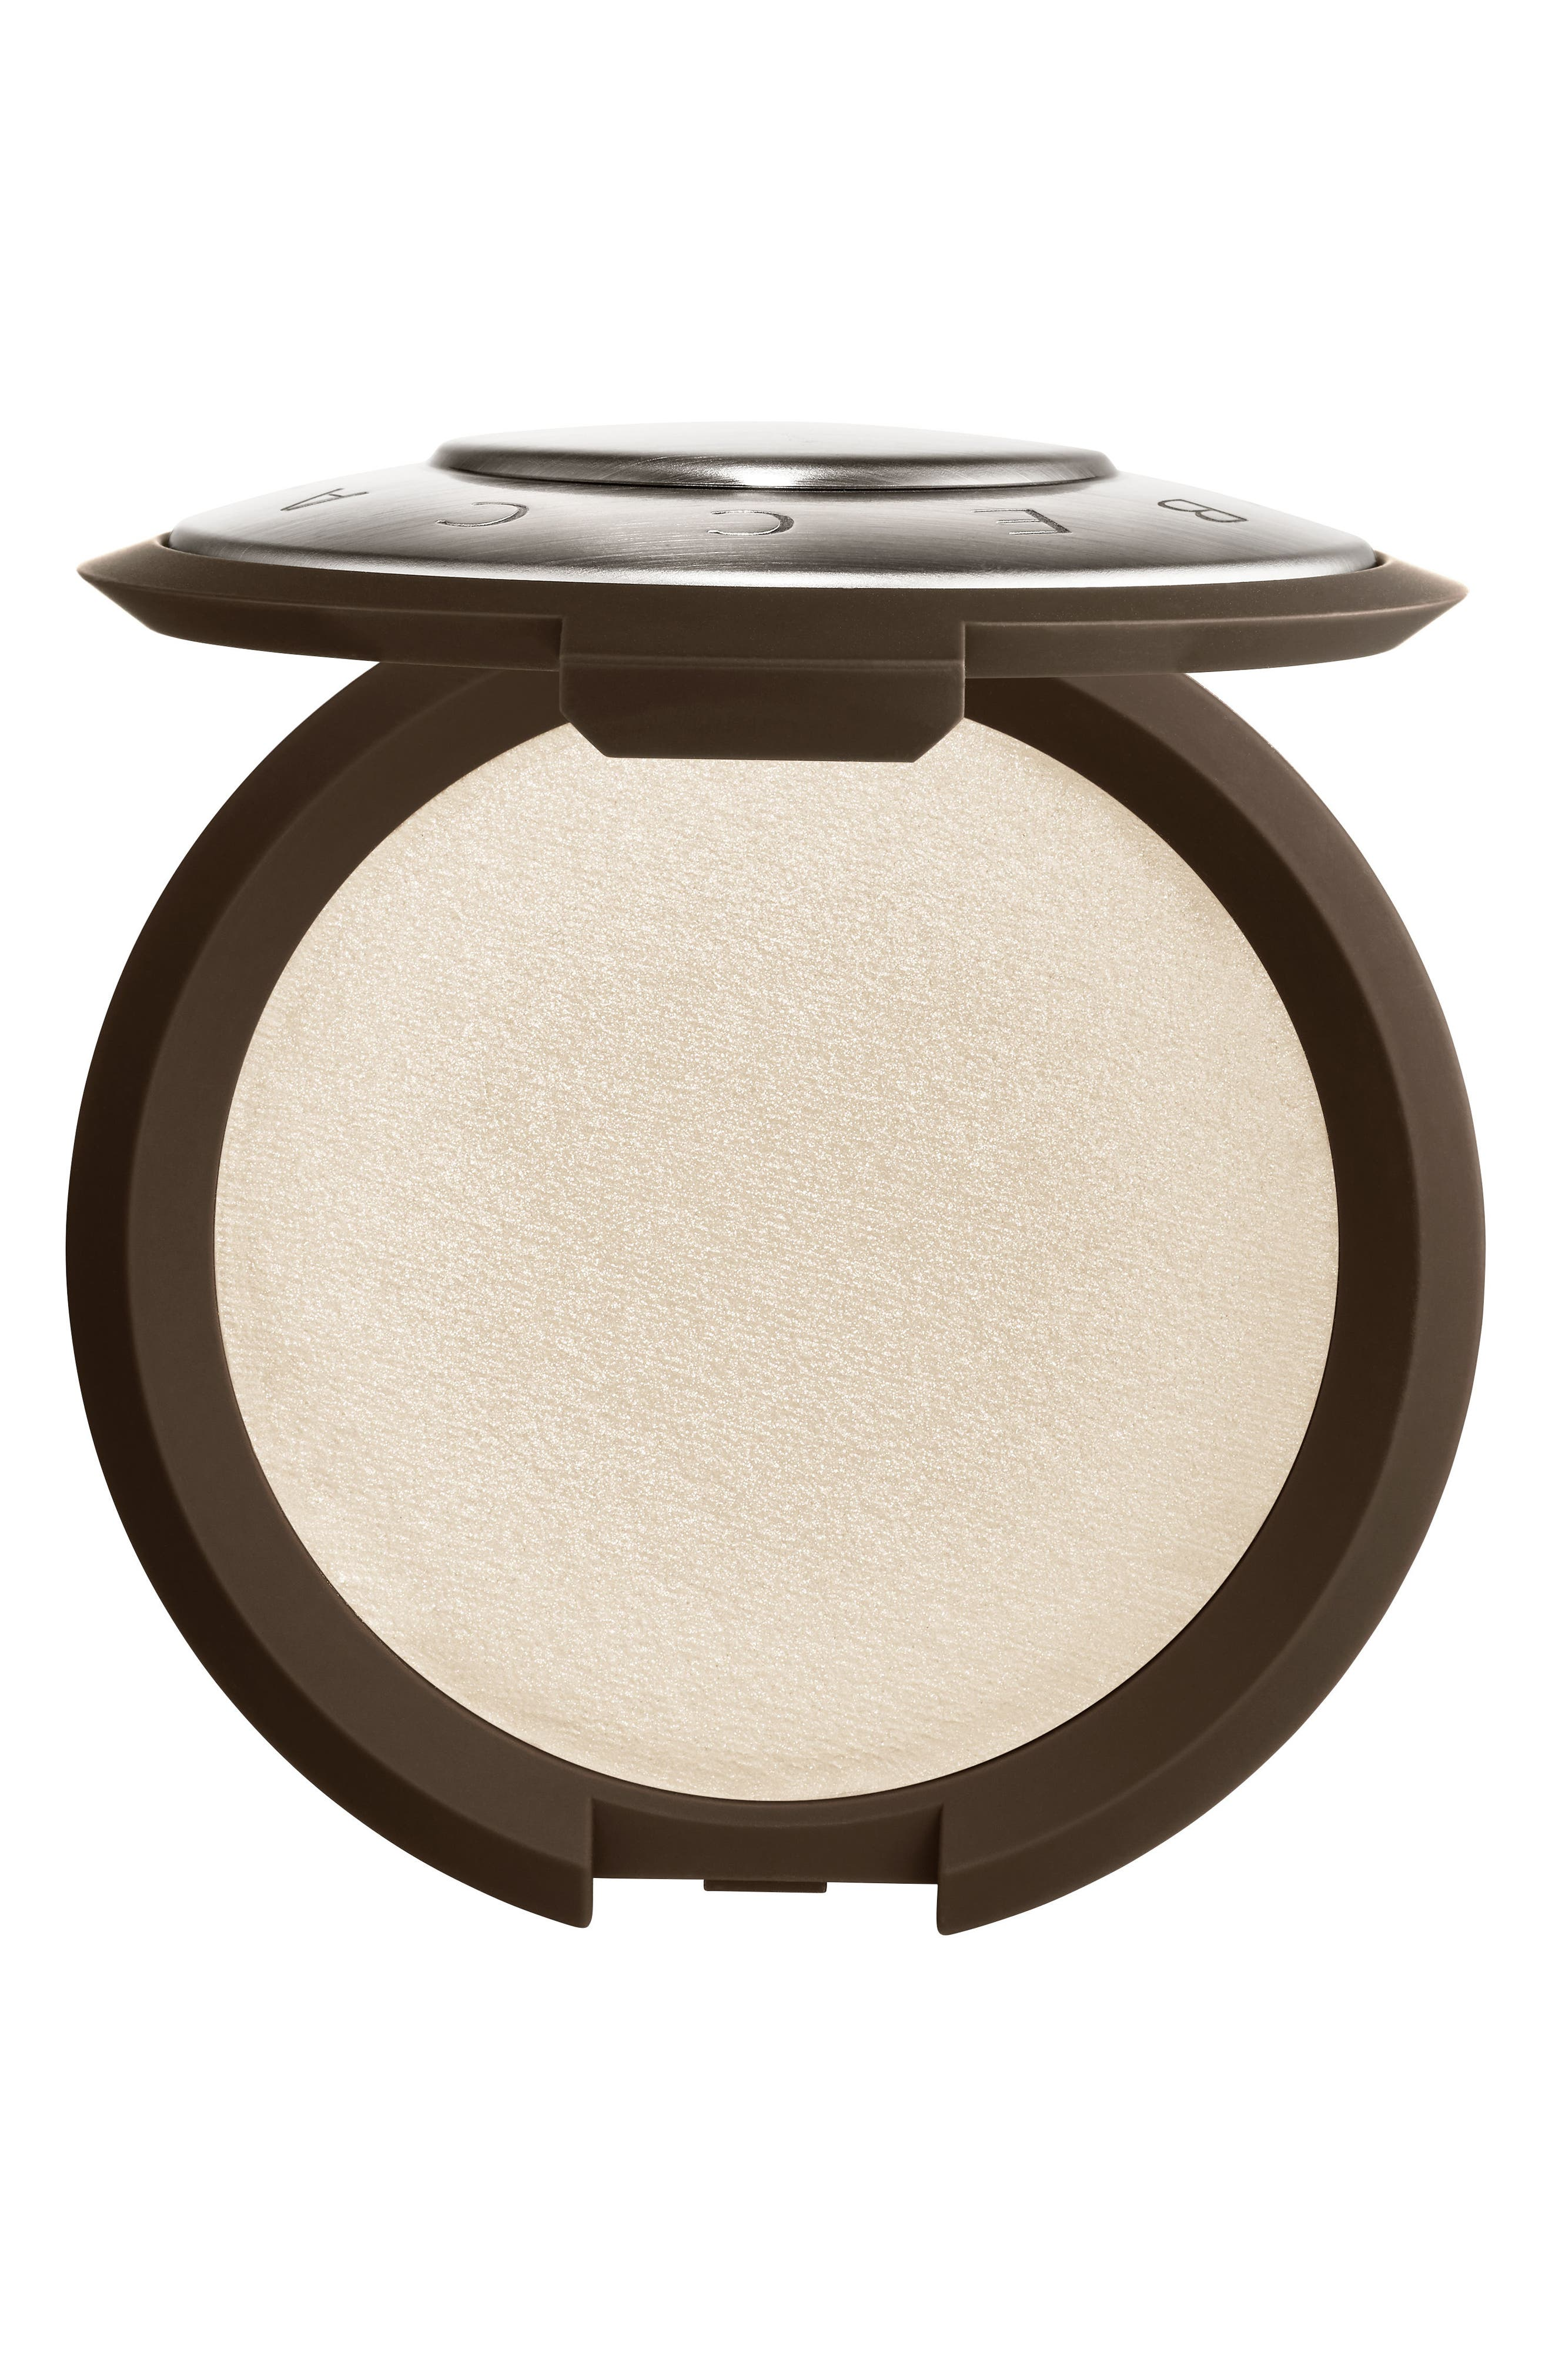 BECCA COSMETICS, BECCA Shimmering Skin Perfector Pressed Highlighter, Main thumbnail 1, color, PEARL